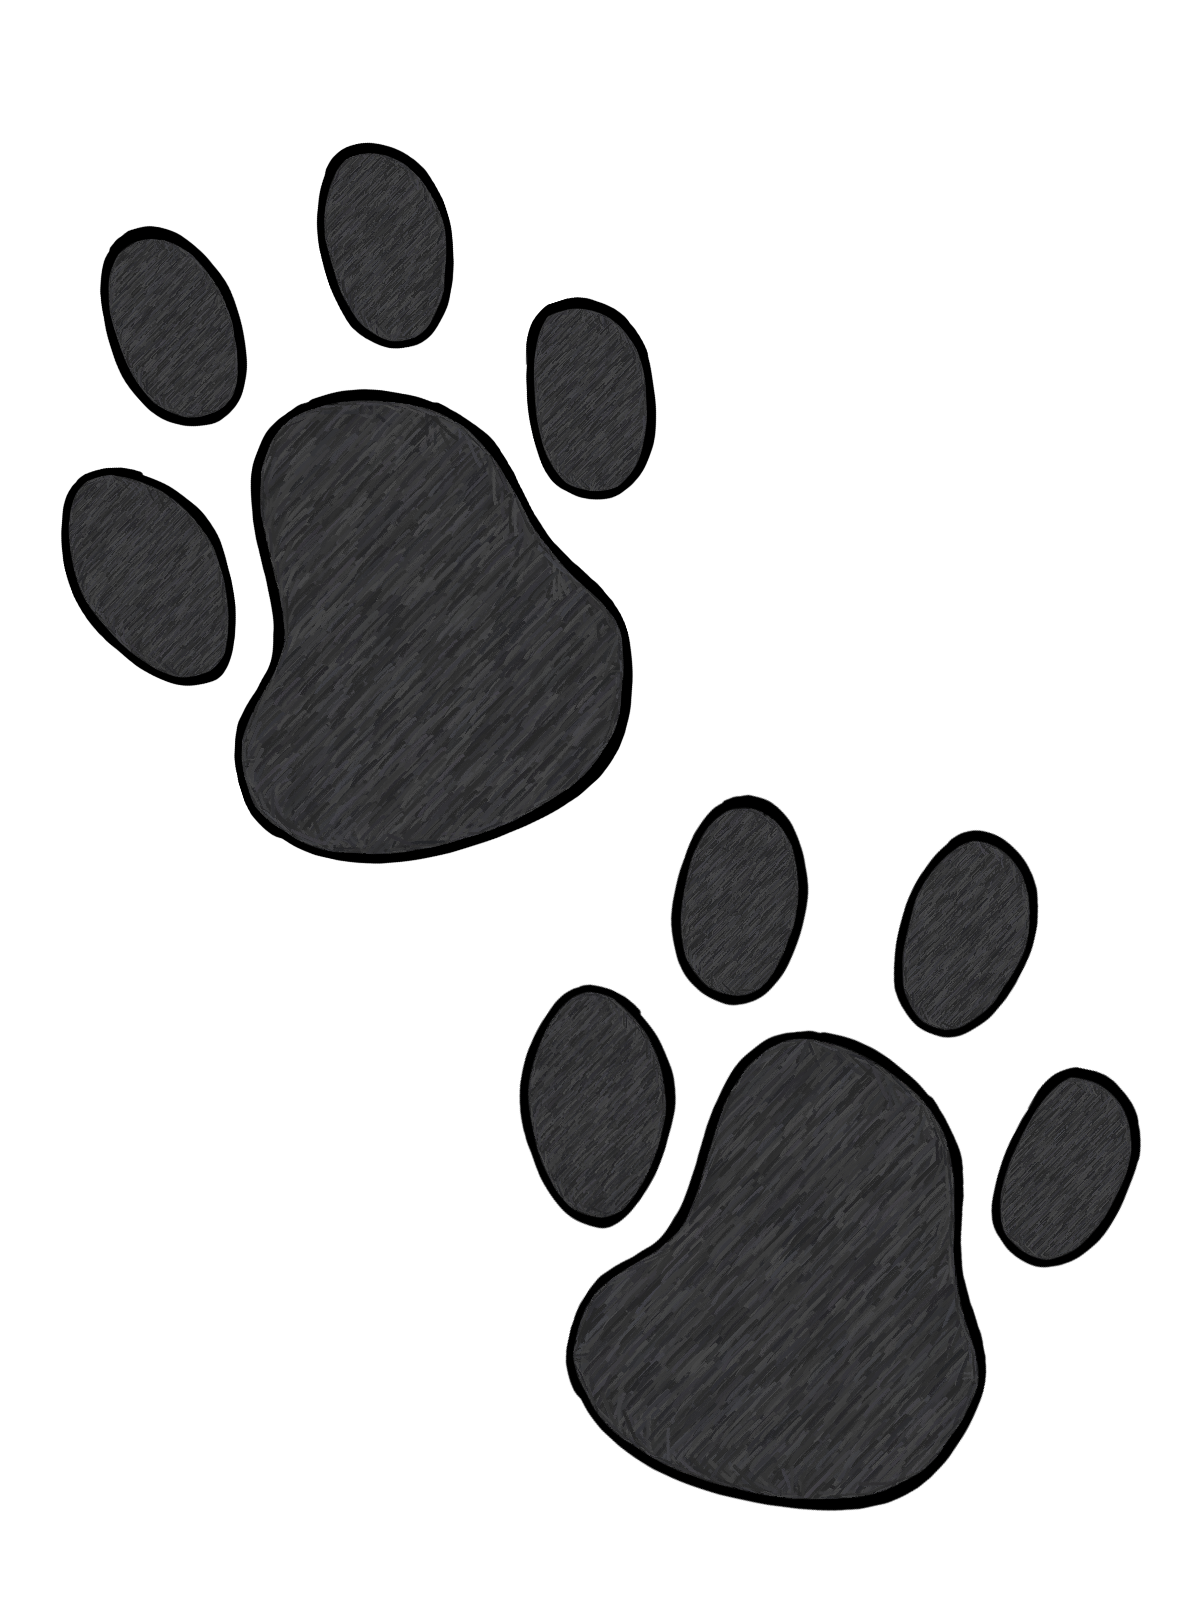 Embroidery Designs Paw Print Free